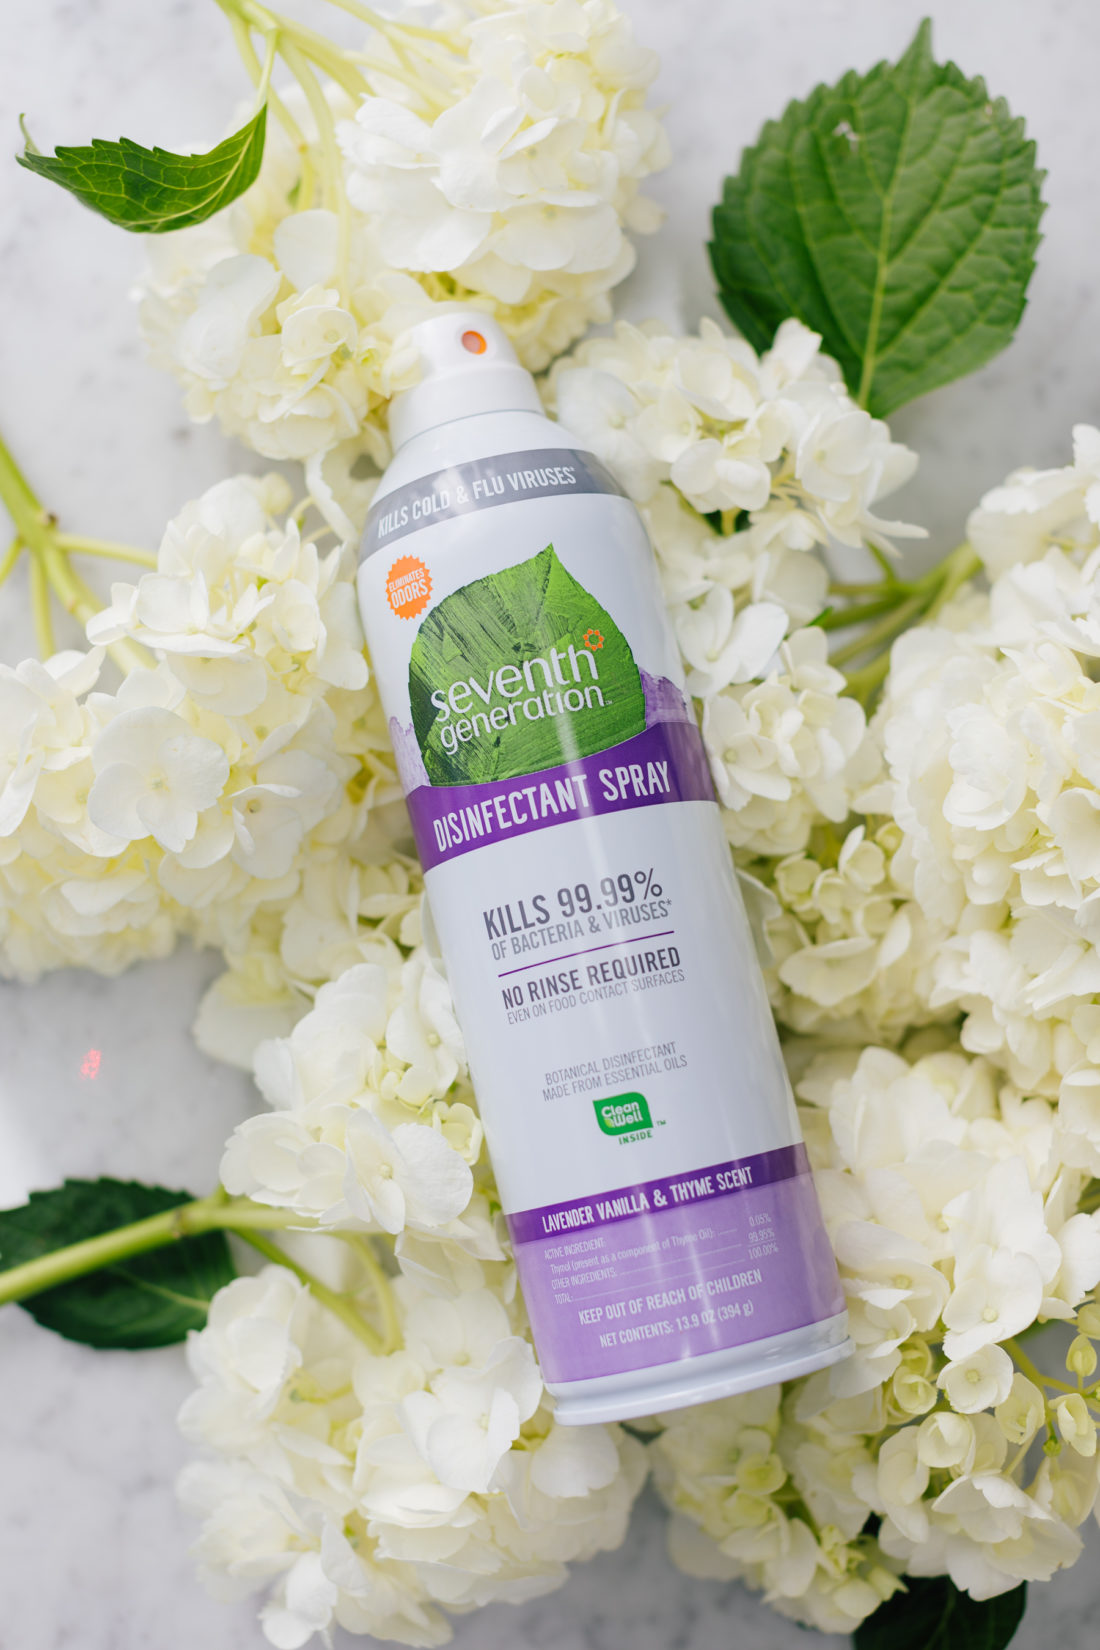 Eva Amurri Martino shares her September 2019 Obsessions which includes this Seventh Generation Disinfectant Spray